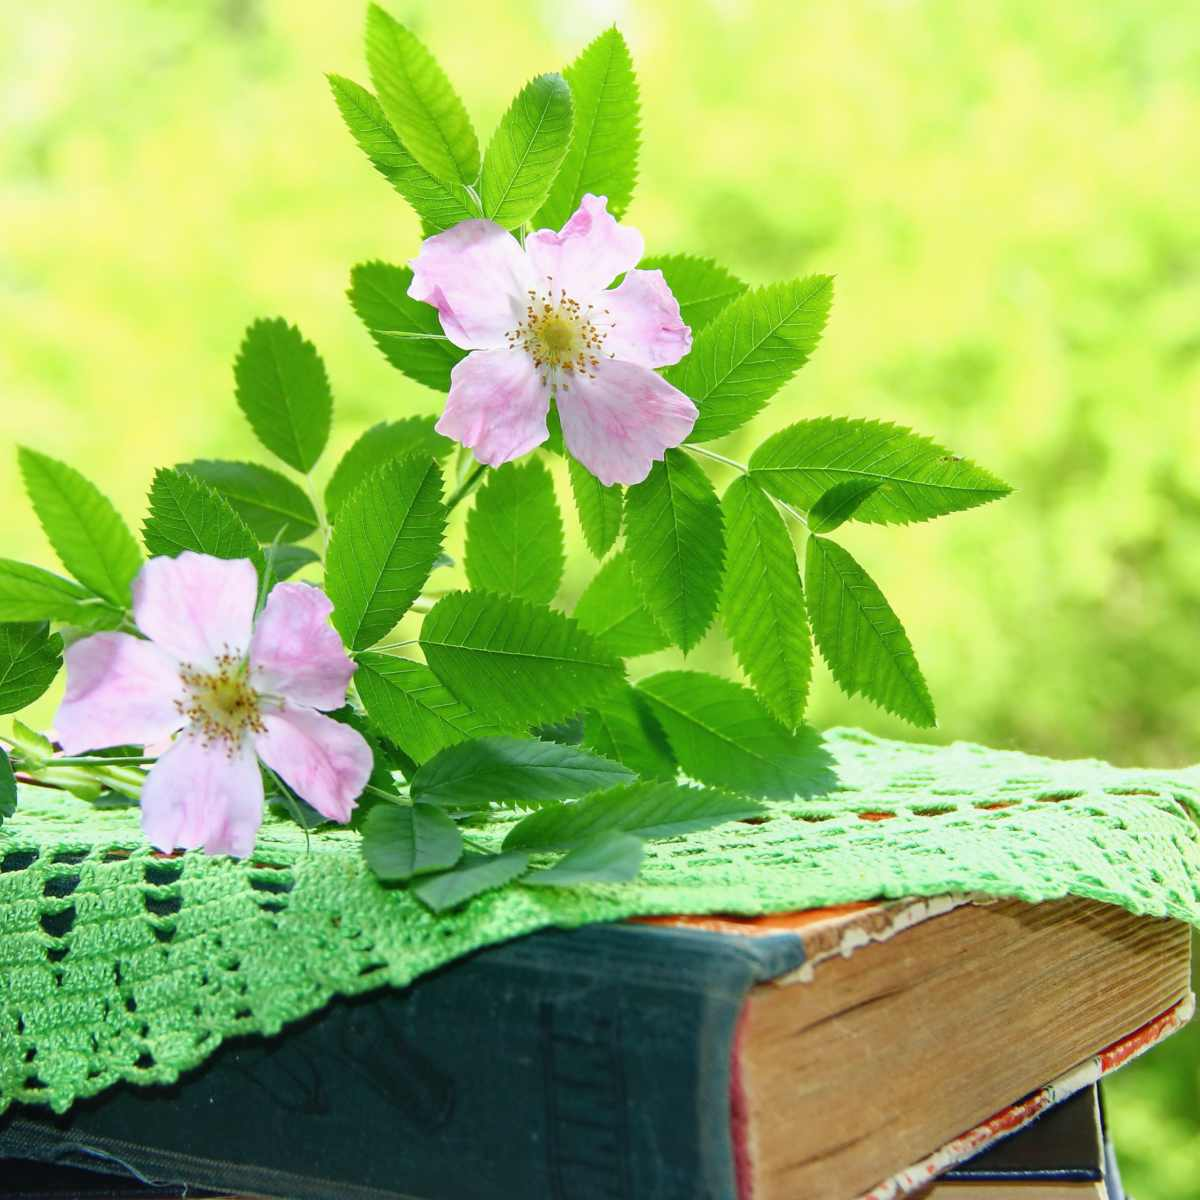 Books show health benefits of dogrose.